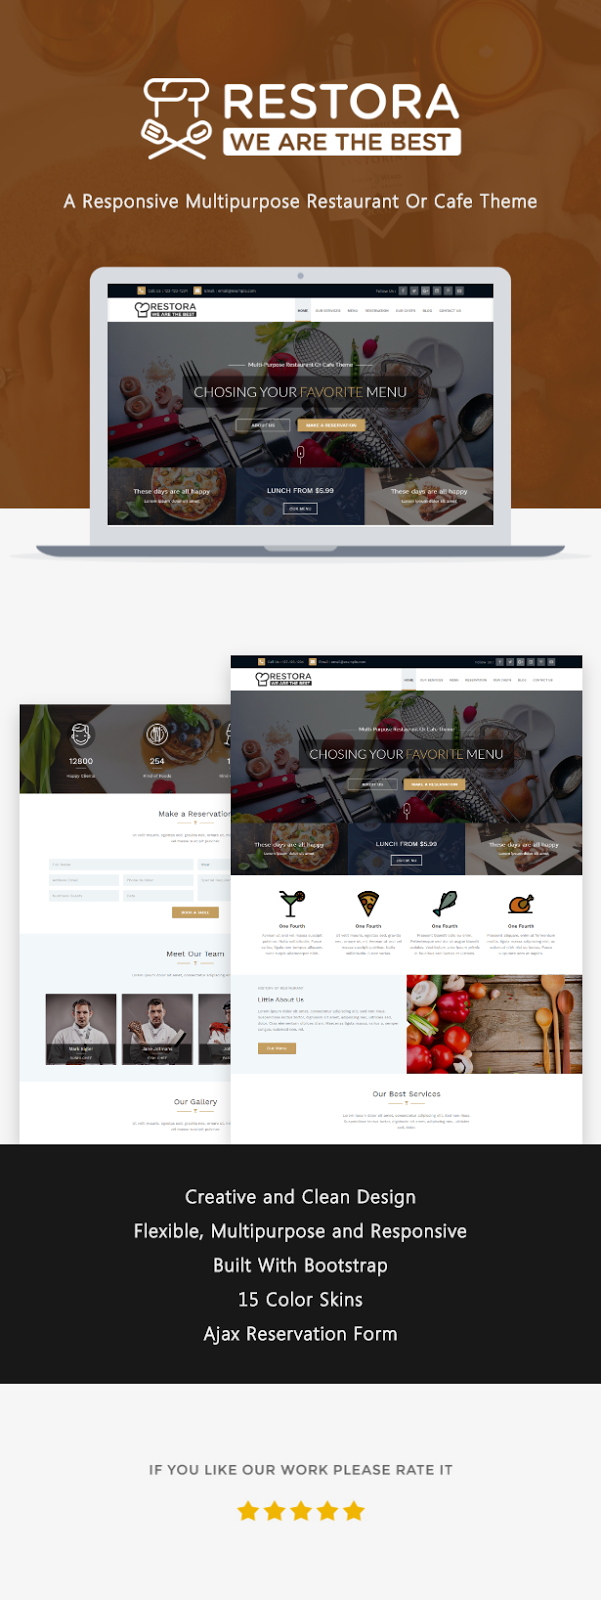 Restaurant, Cafeteria and Bistro Responsive Template - Restora Multipurpose